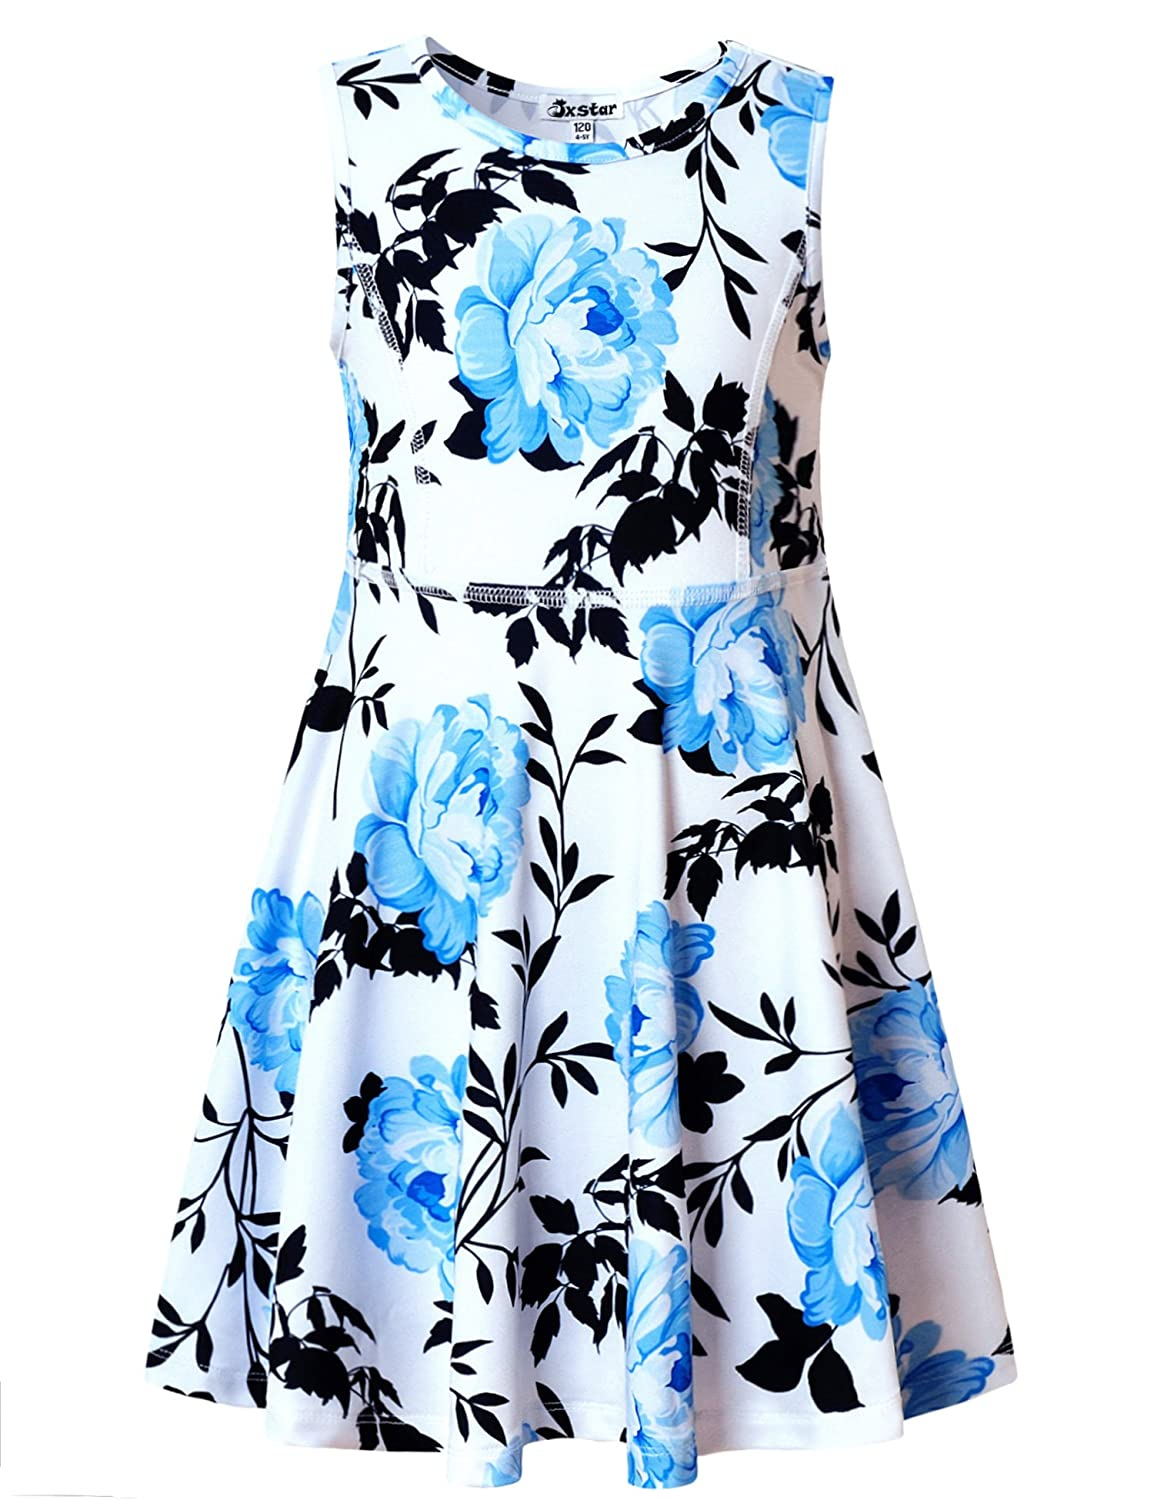 Jxstar Girls Summer Dress Sleeveless Printing Casual/Party 3-13Years seleevelessdress